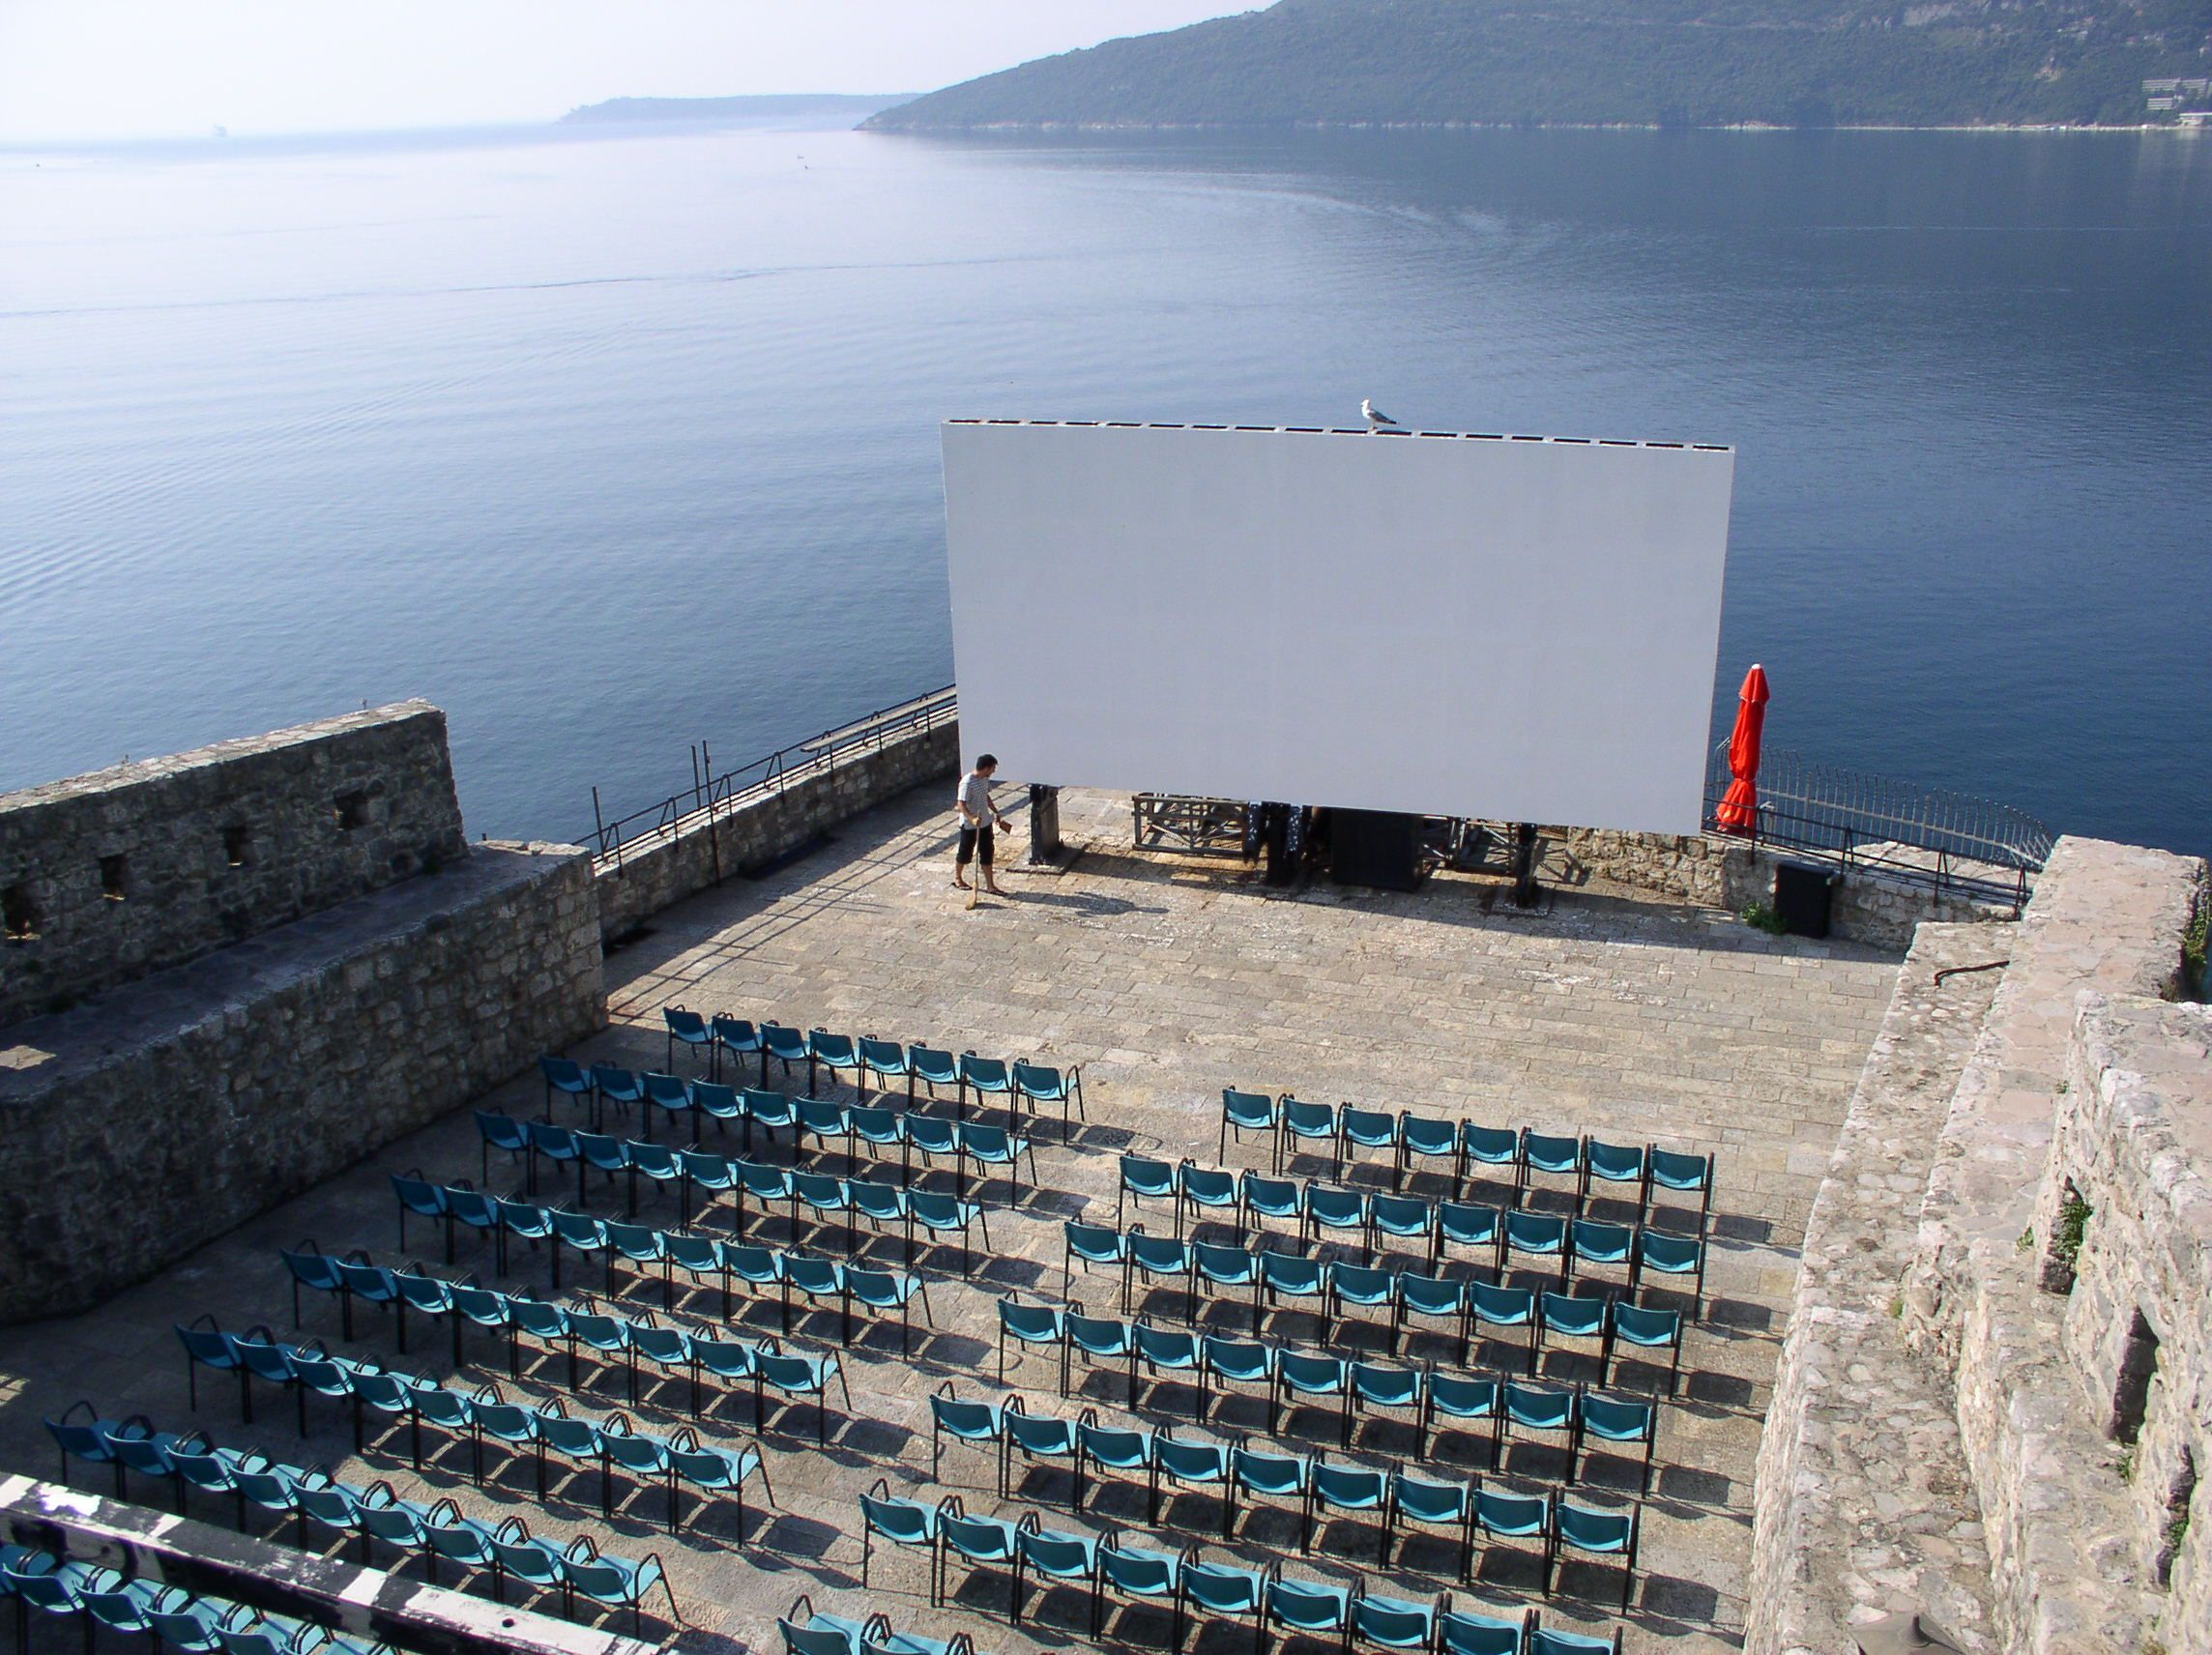 Journal About This Experience Sea Cinema Get Bold Ipad App Free Journaling Within App Itunes Apple Com Open Air Cinema Herceg Novi Cinema Architecture